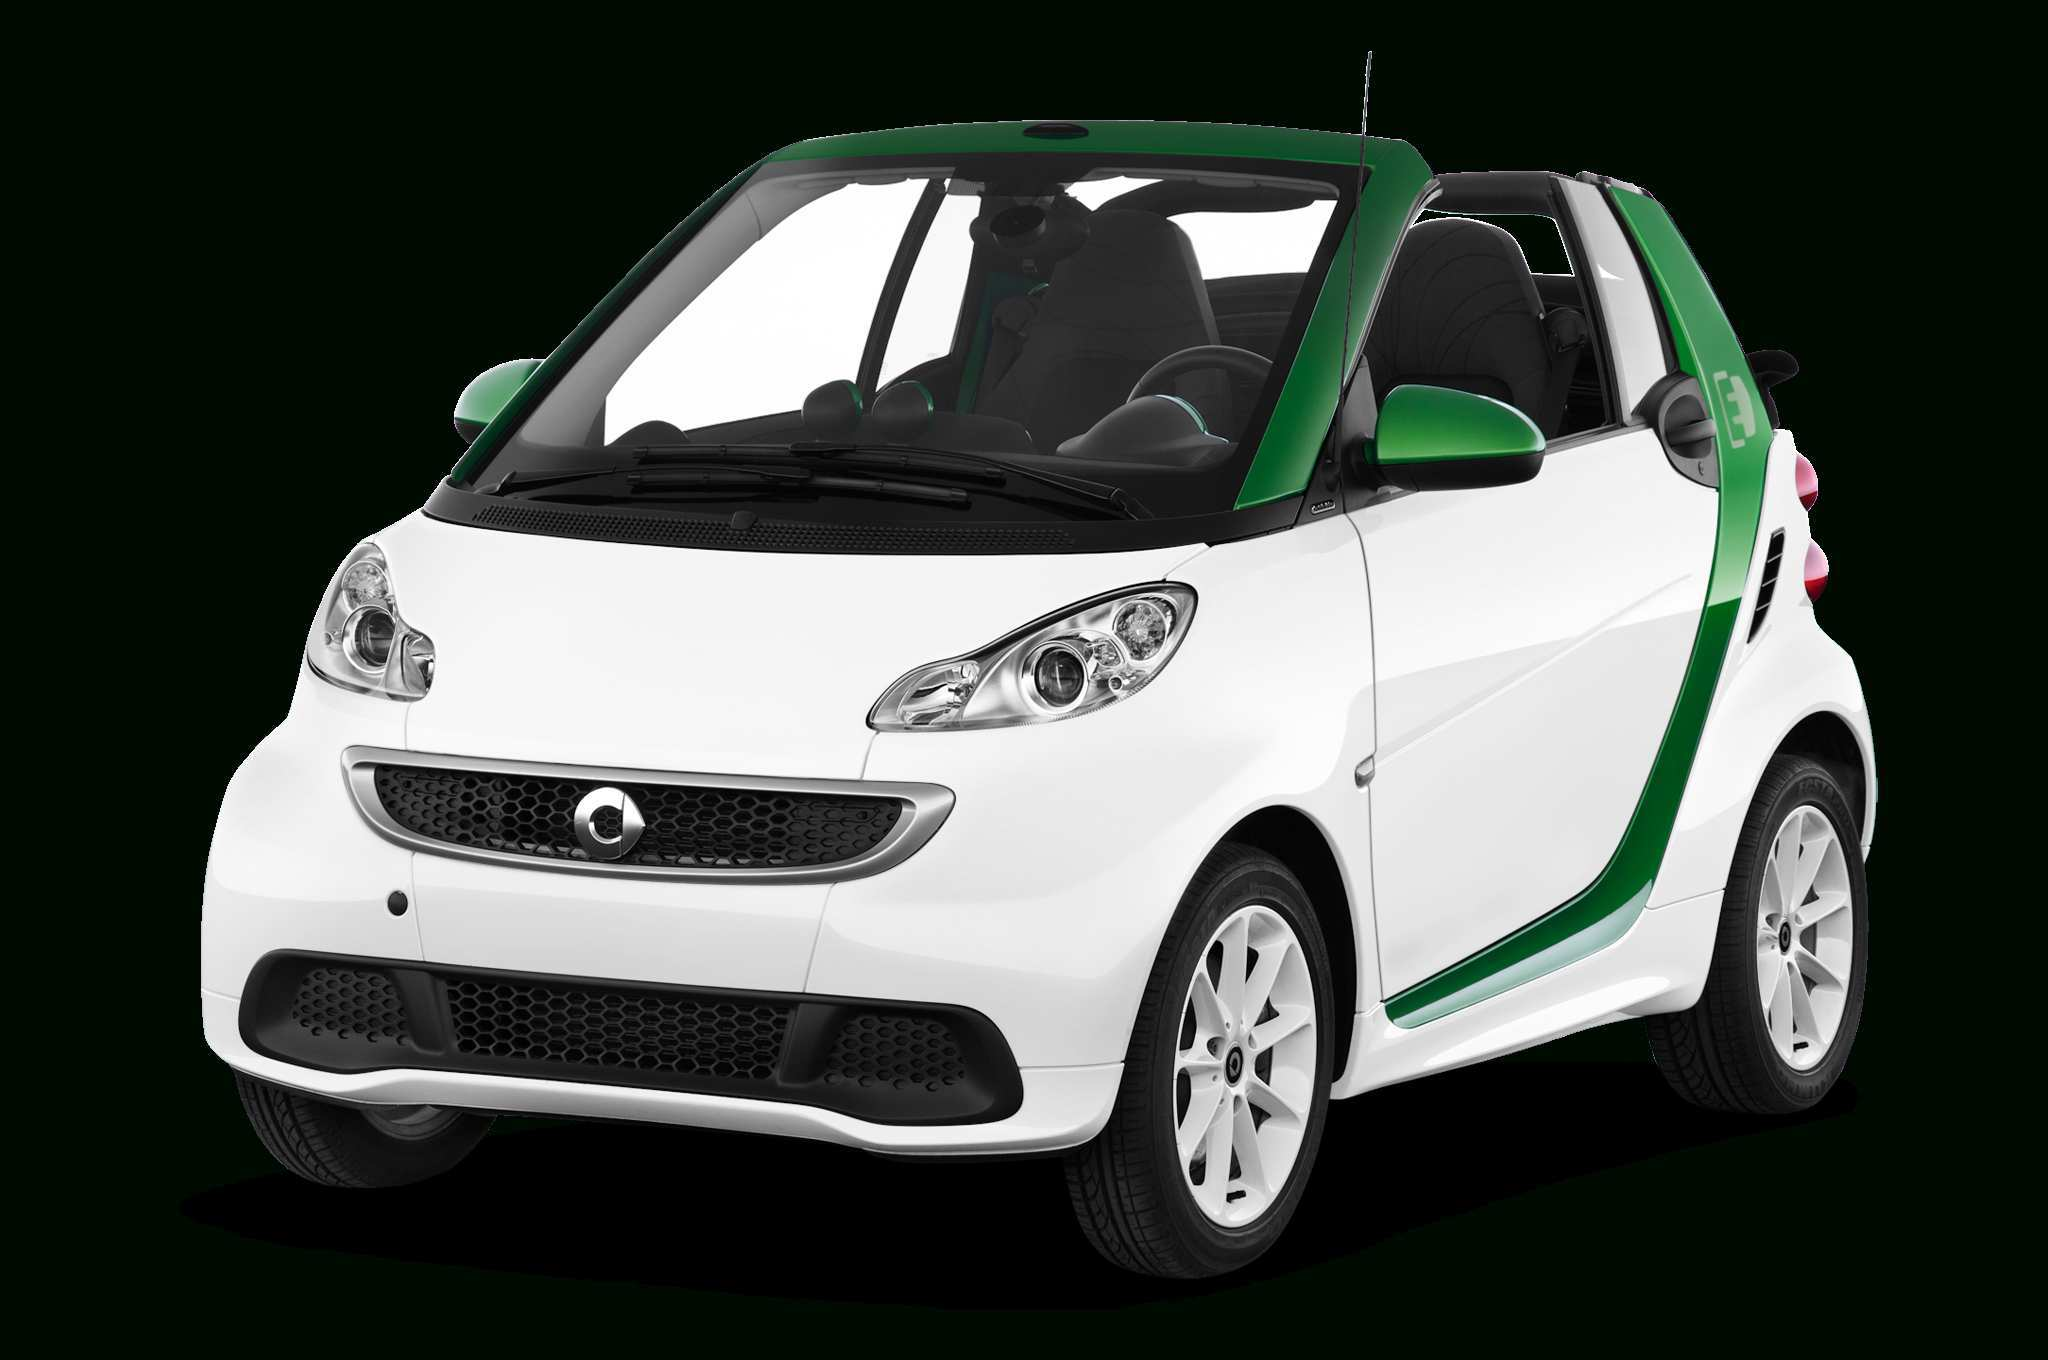 89 The 2020 Smart Fortwos Price And Release Date